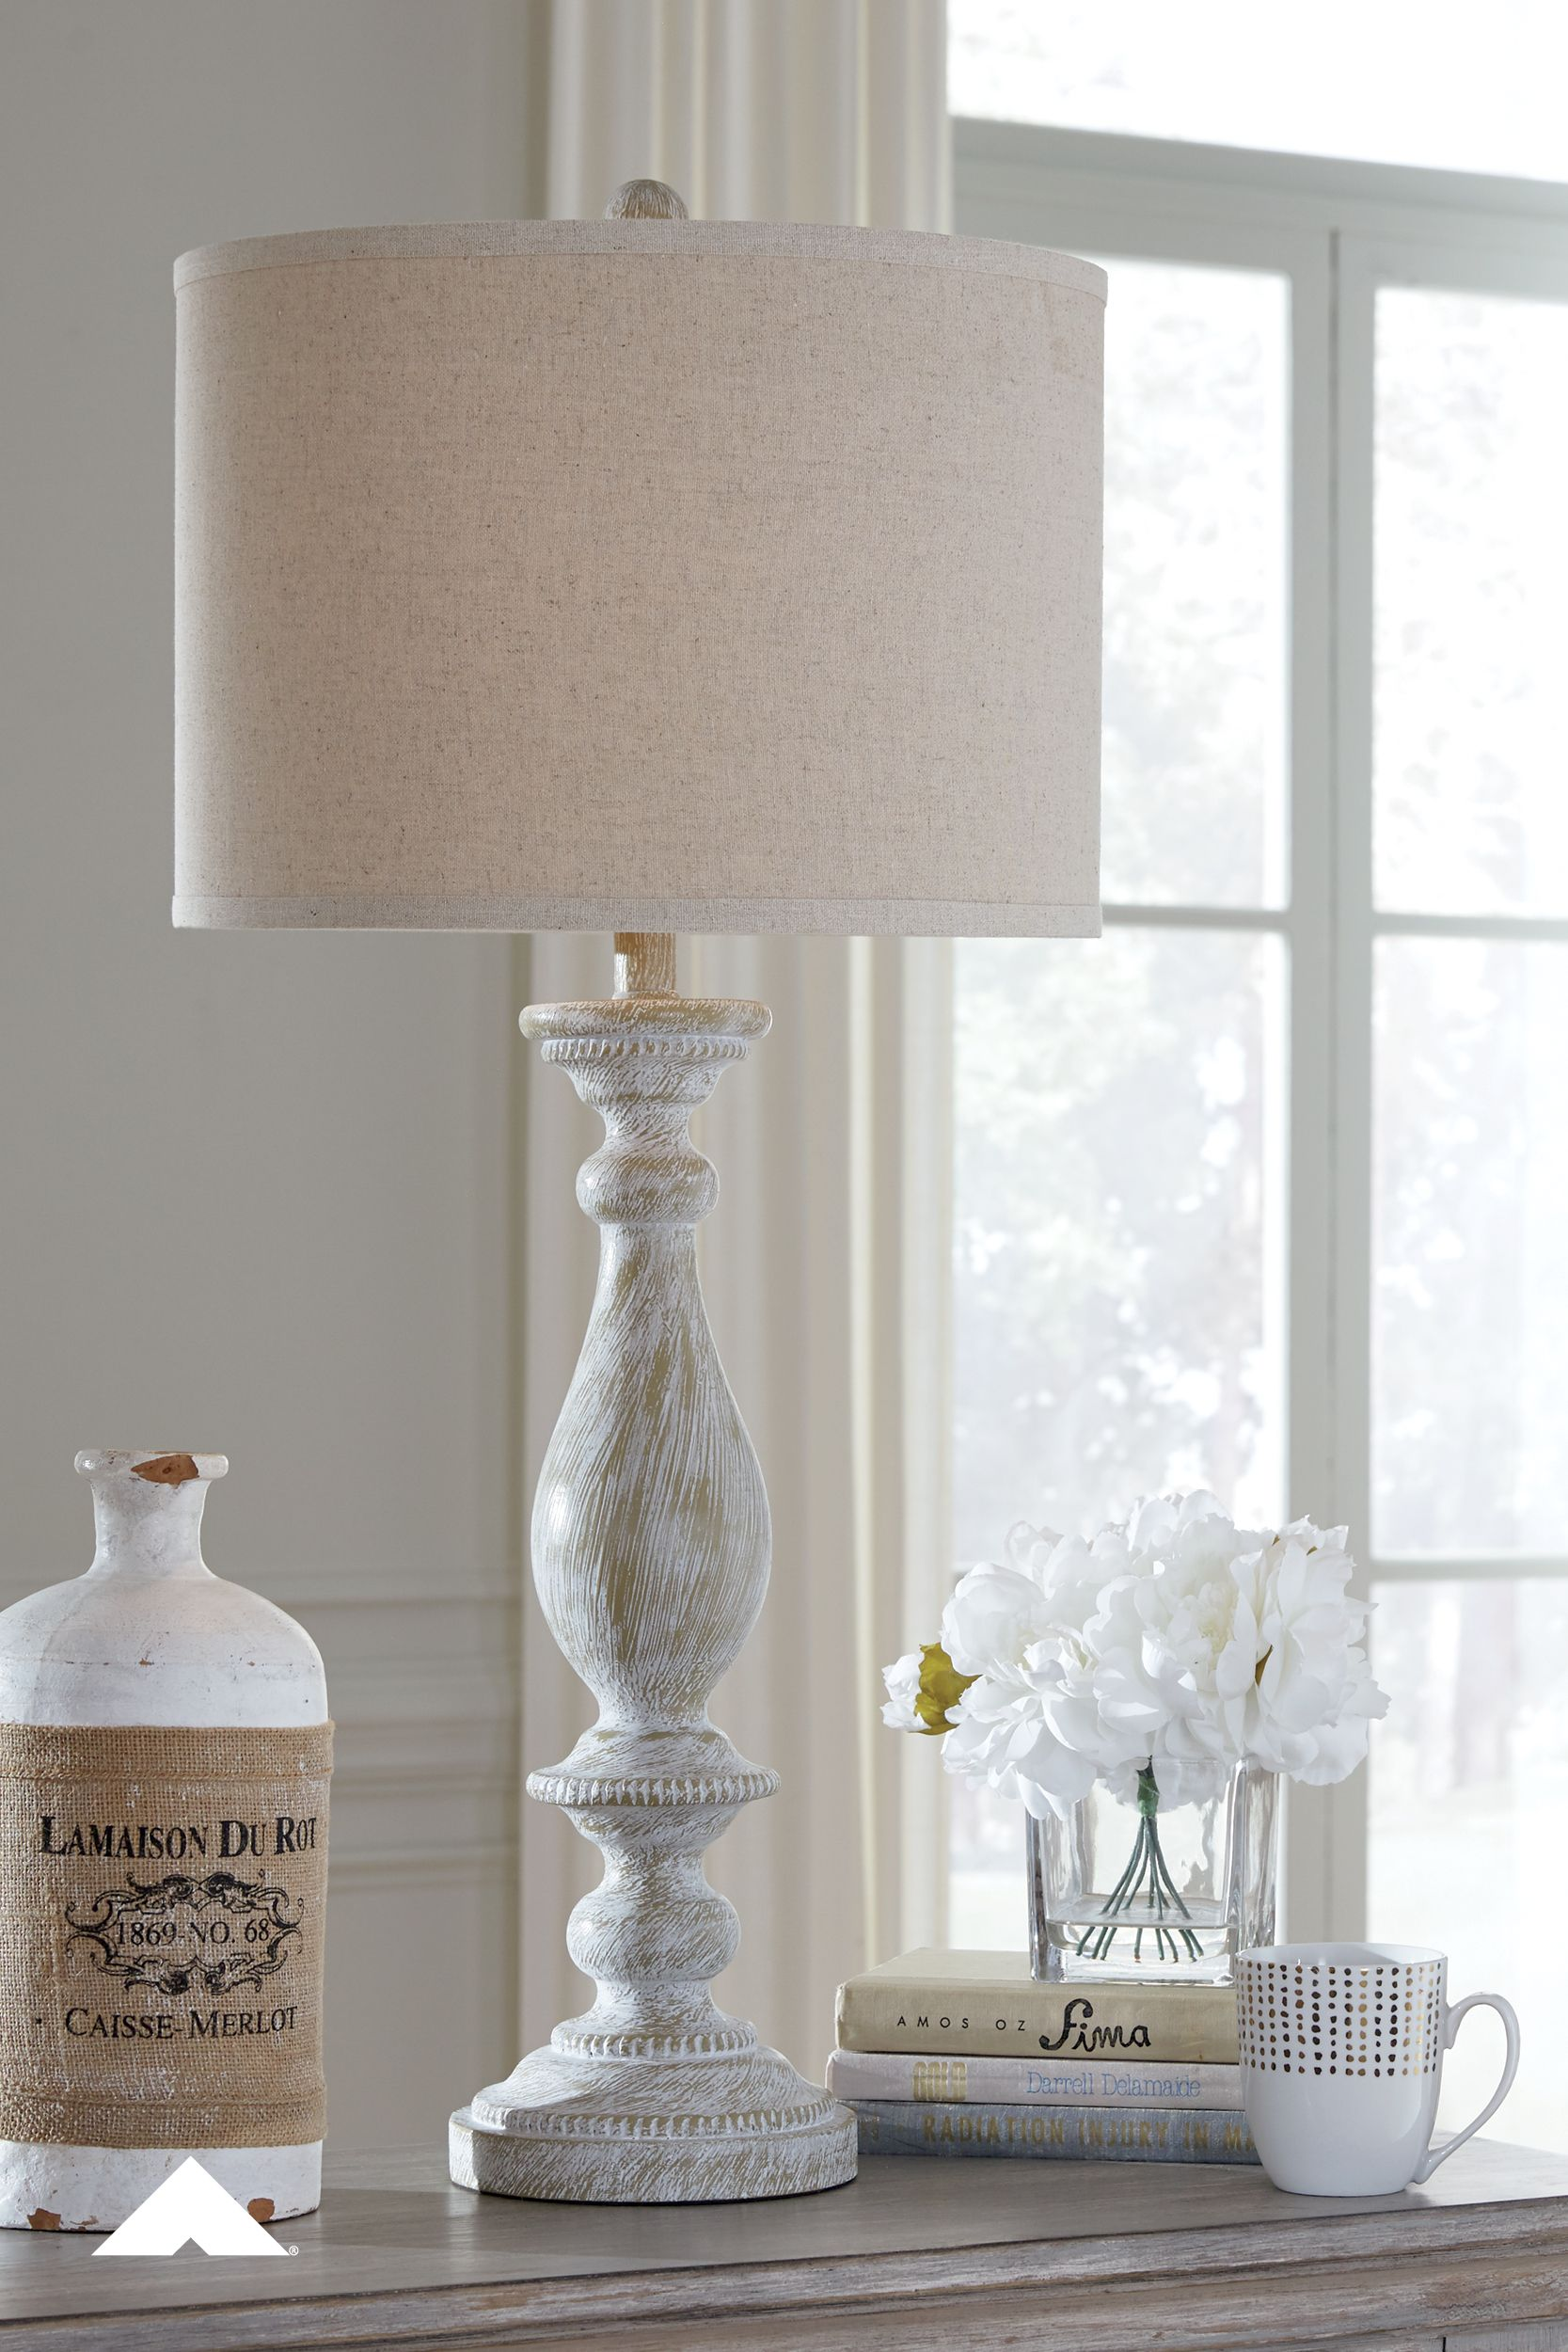 Bernadate Whitewash Table Lamp By Ashley Furniture Industries With Its Whitewash Finish This Table Lamp I In 2020 Table Lamp Sets Farmhouse Lamps Vintage Table Lamp